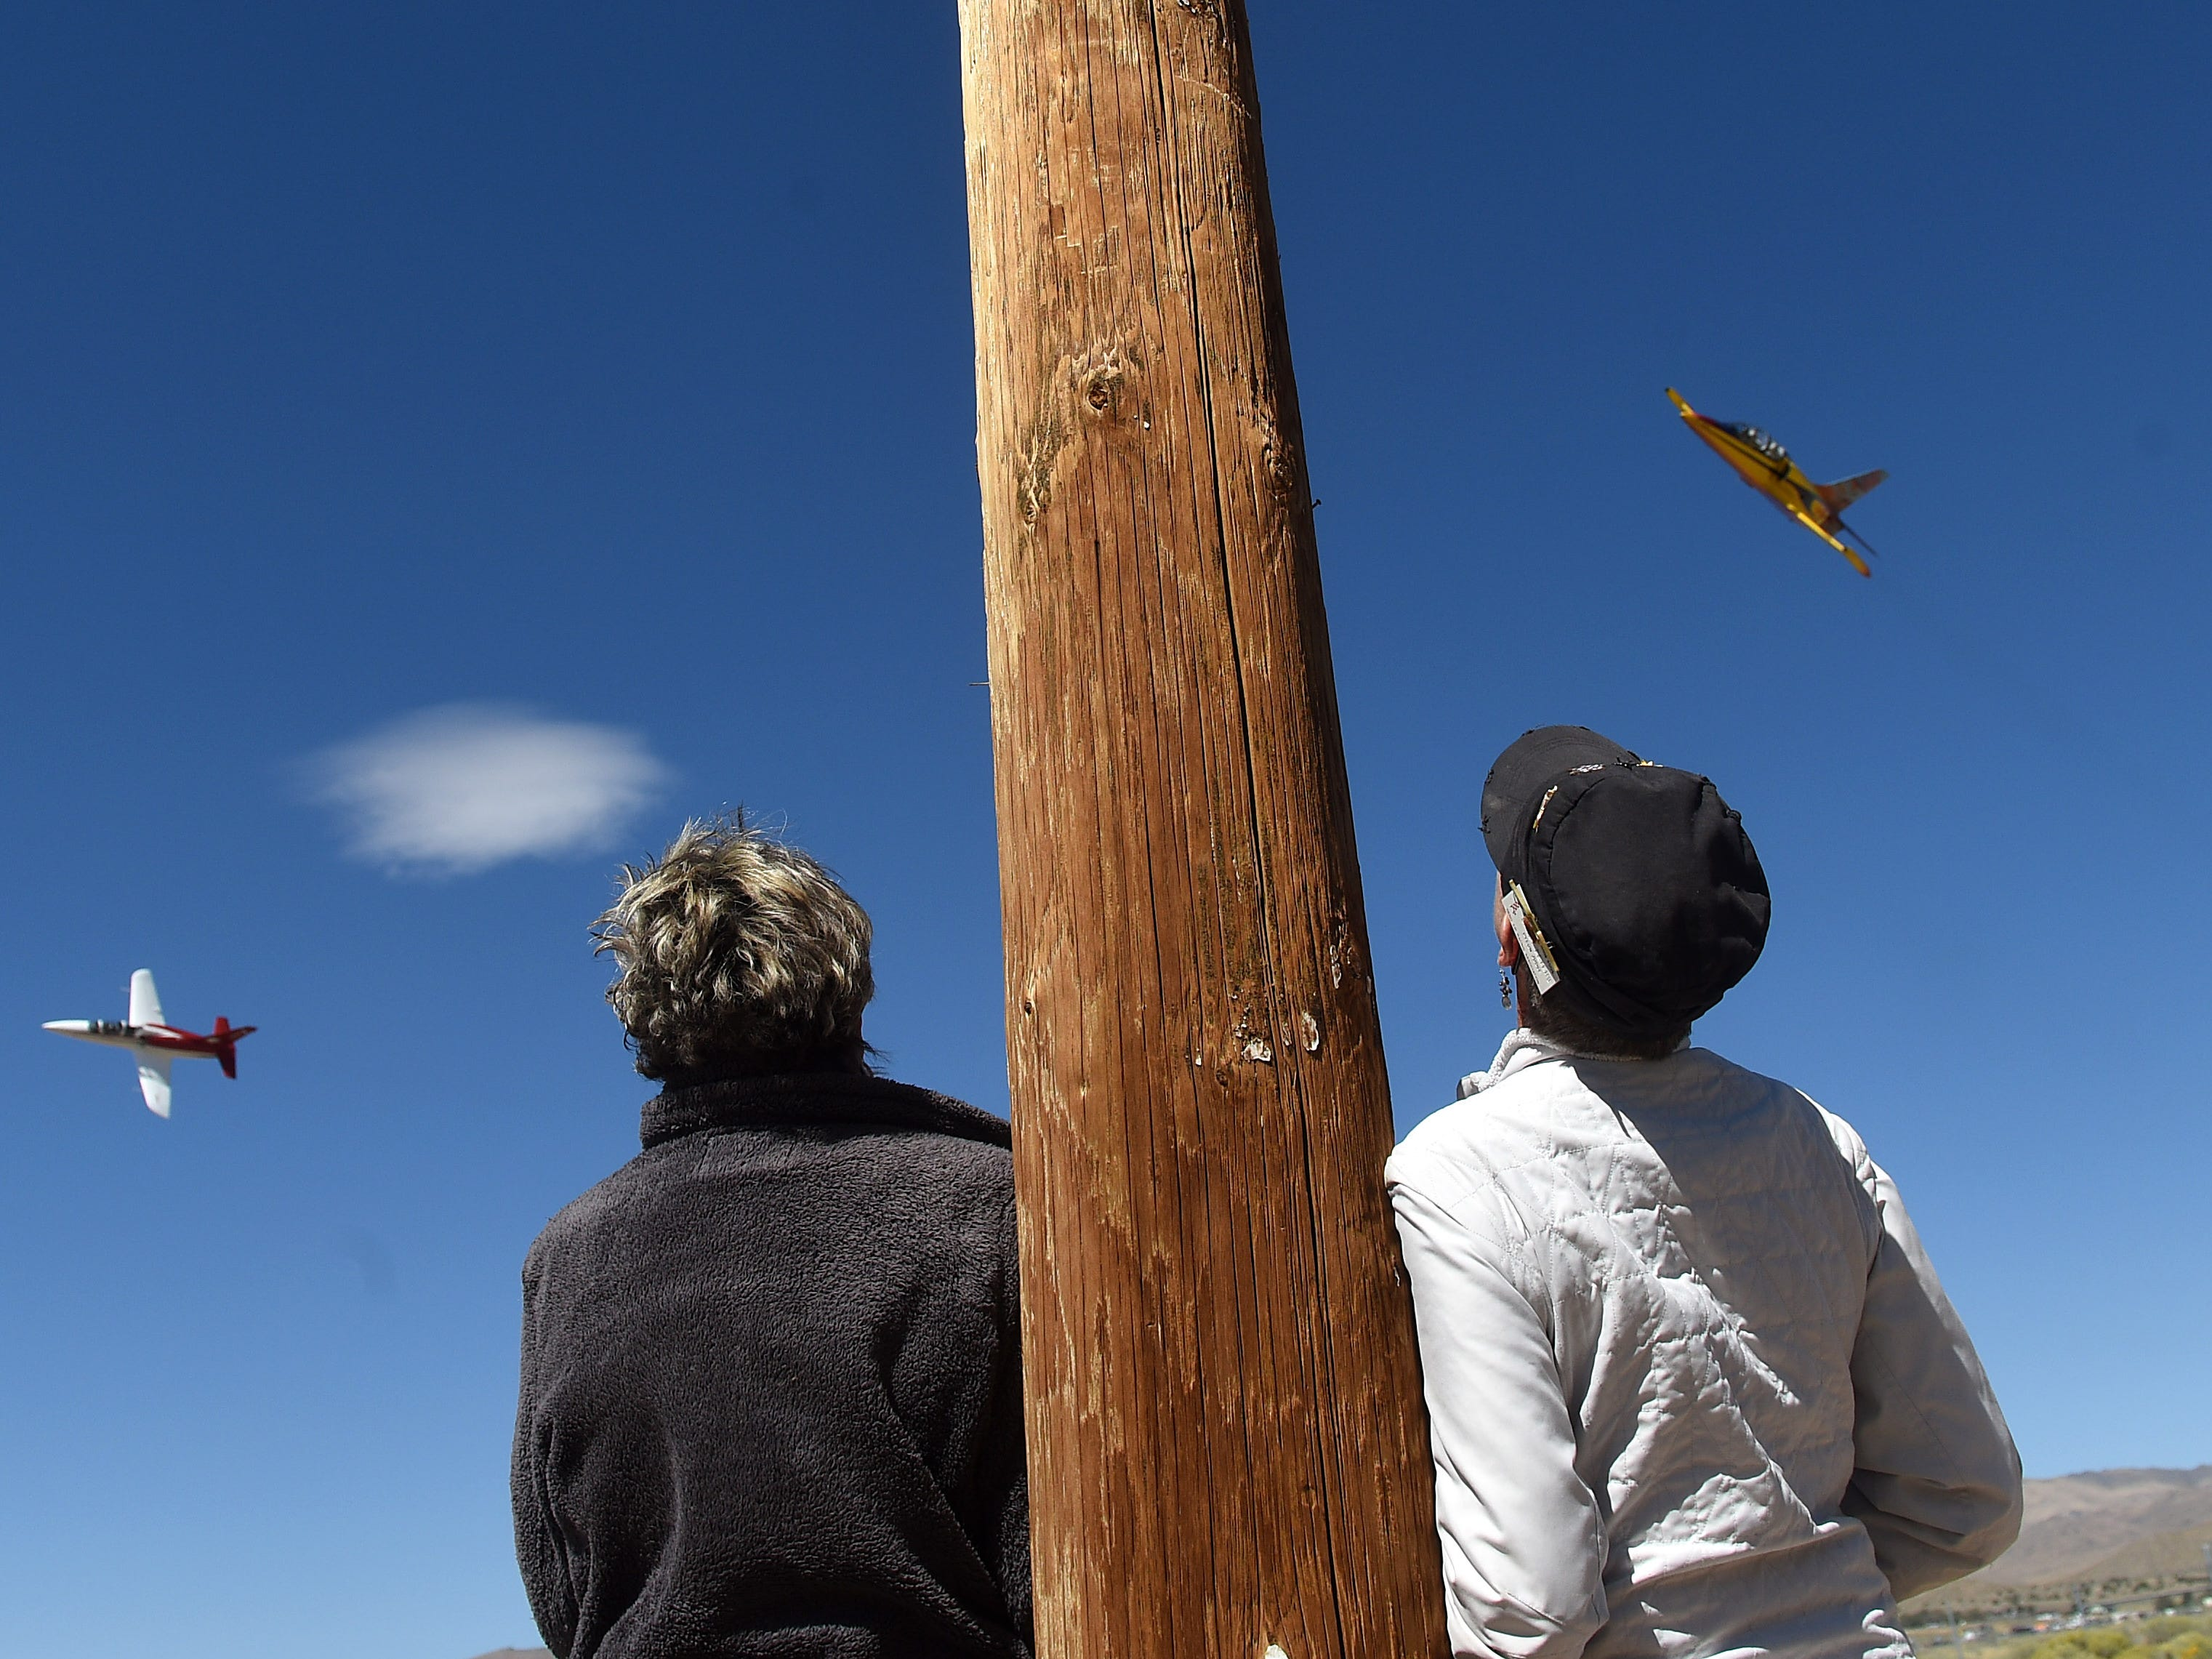 Pylon 7 judges Kathy Kibby, left, and Sandy Peters keep an eye on the planes to make sure they stay to the outside of the pylon during the STIHL National Championship Air Races at Stead Airport north of Reno on Sept. 13, 2018.